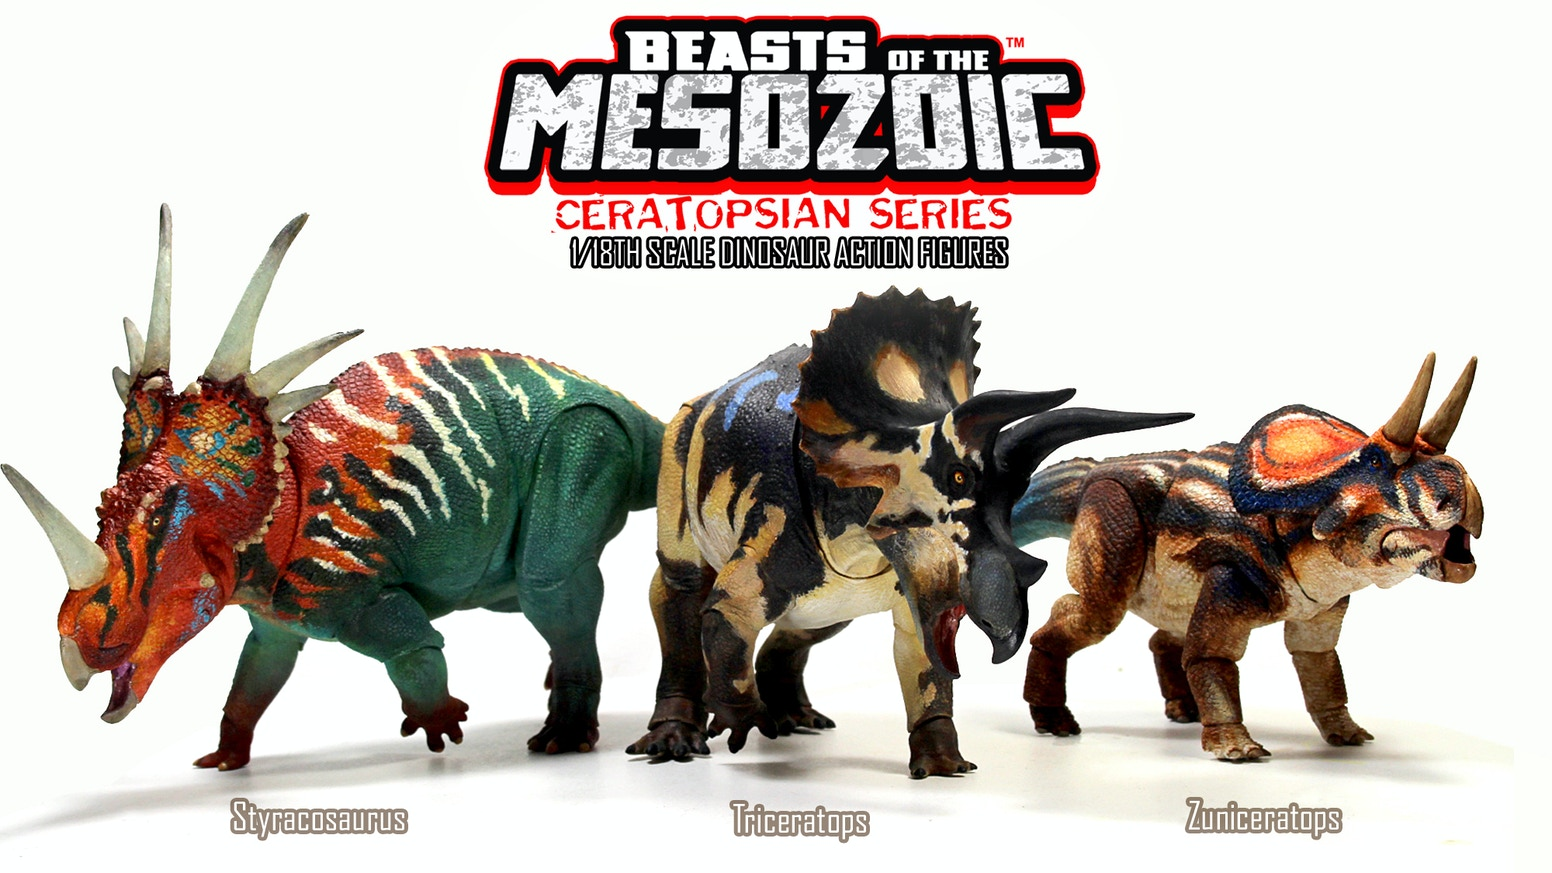 Beasts of the Mesozoic: Ceratopsians- a line of scientifically accurate dinosaur action figures with elaborate detail and articulation(Pre-order link below)